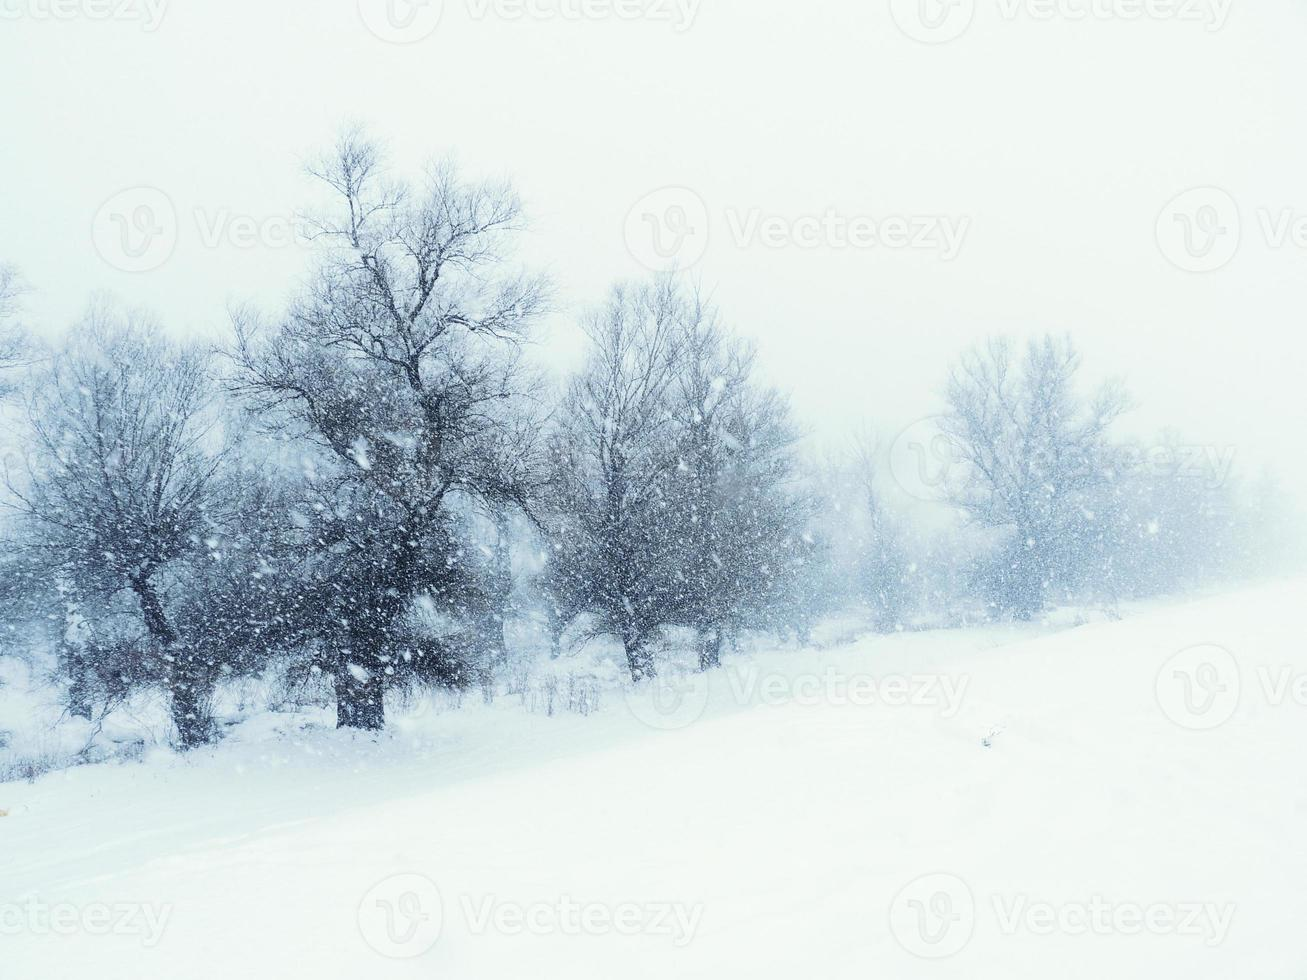 Winter time photo